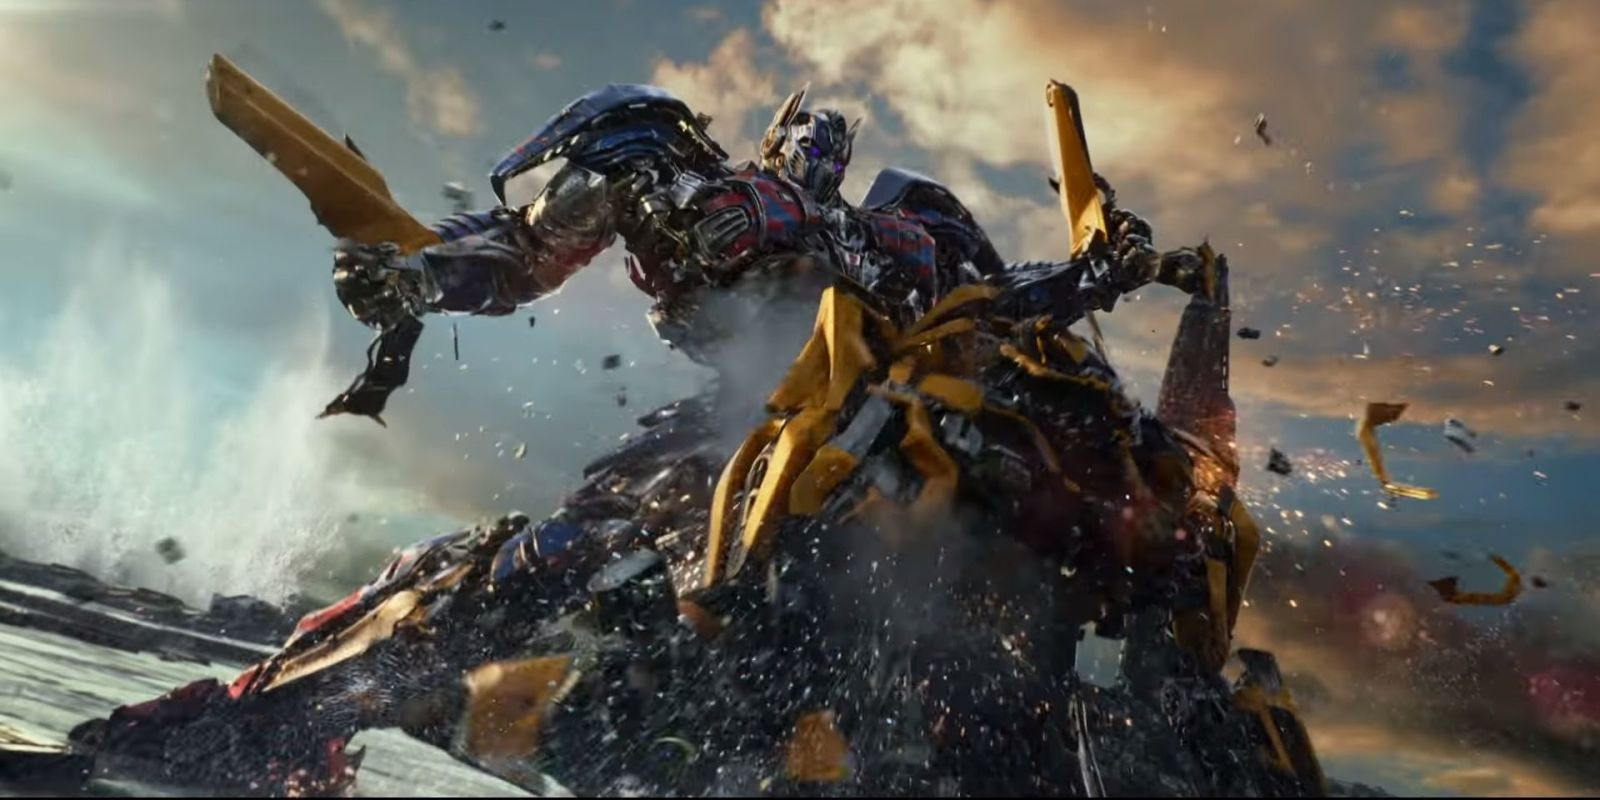 Michael Bay promises that Transformers: The Last Knight is the shortest sequel yet